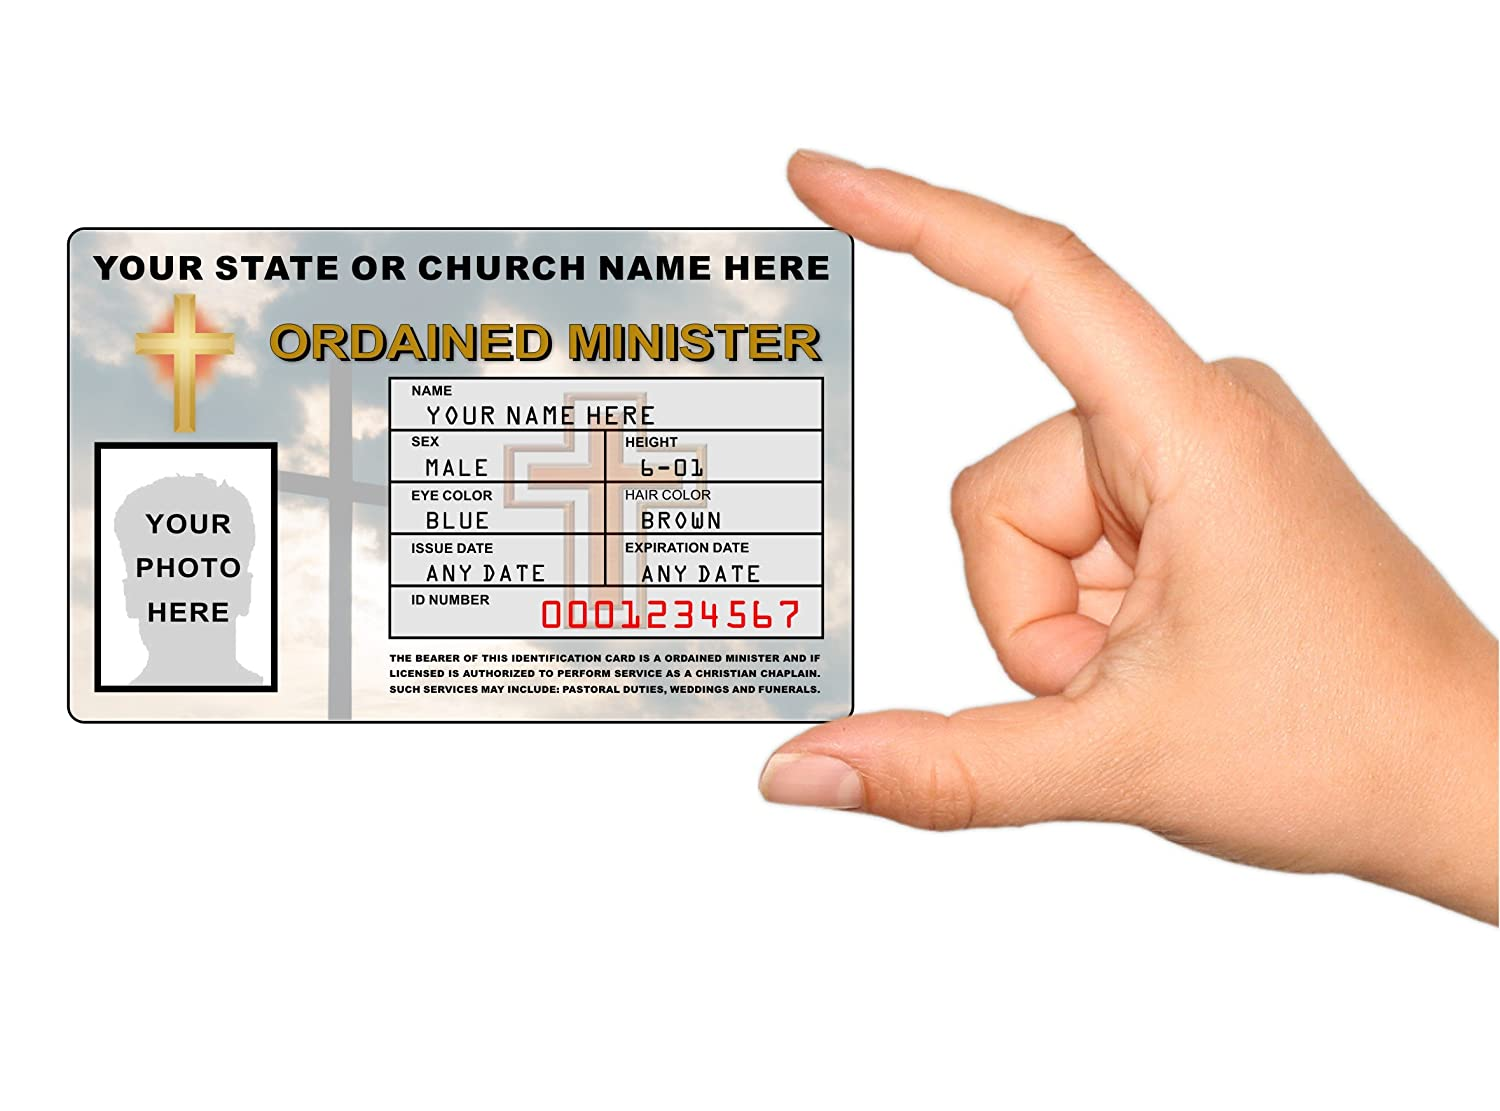 graphic about Free Printable Church Usher Hand Signals named Ordained Minister Identification Card - Customized with Your Photograph and Content material - Church Id